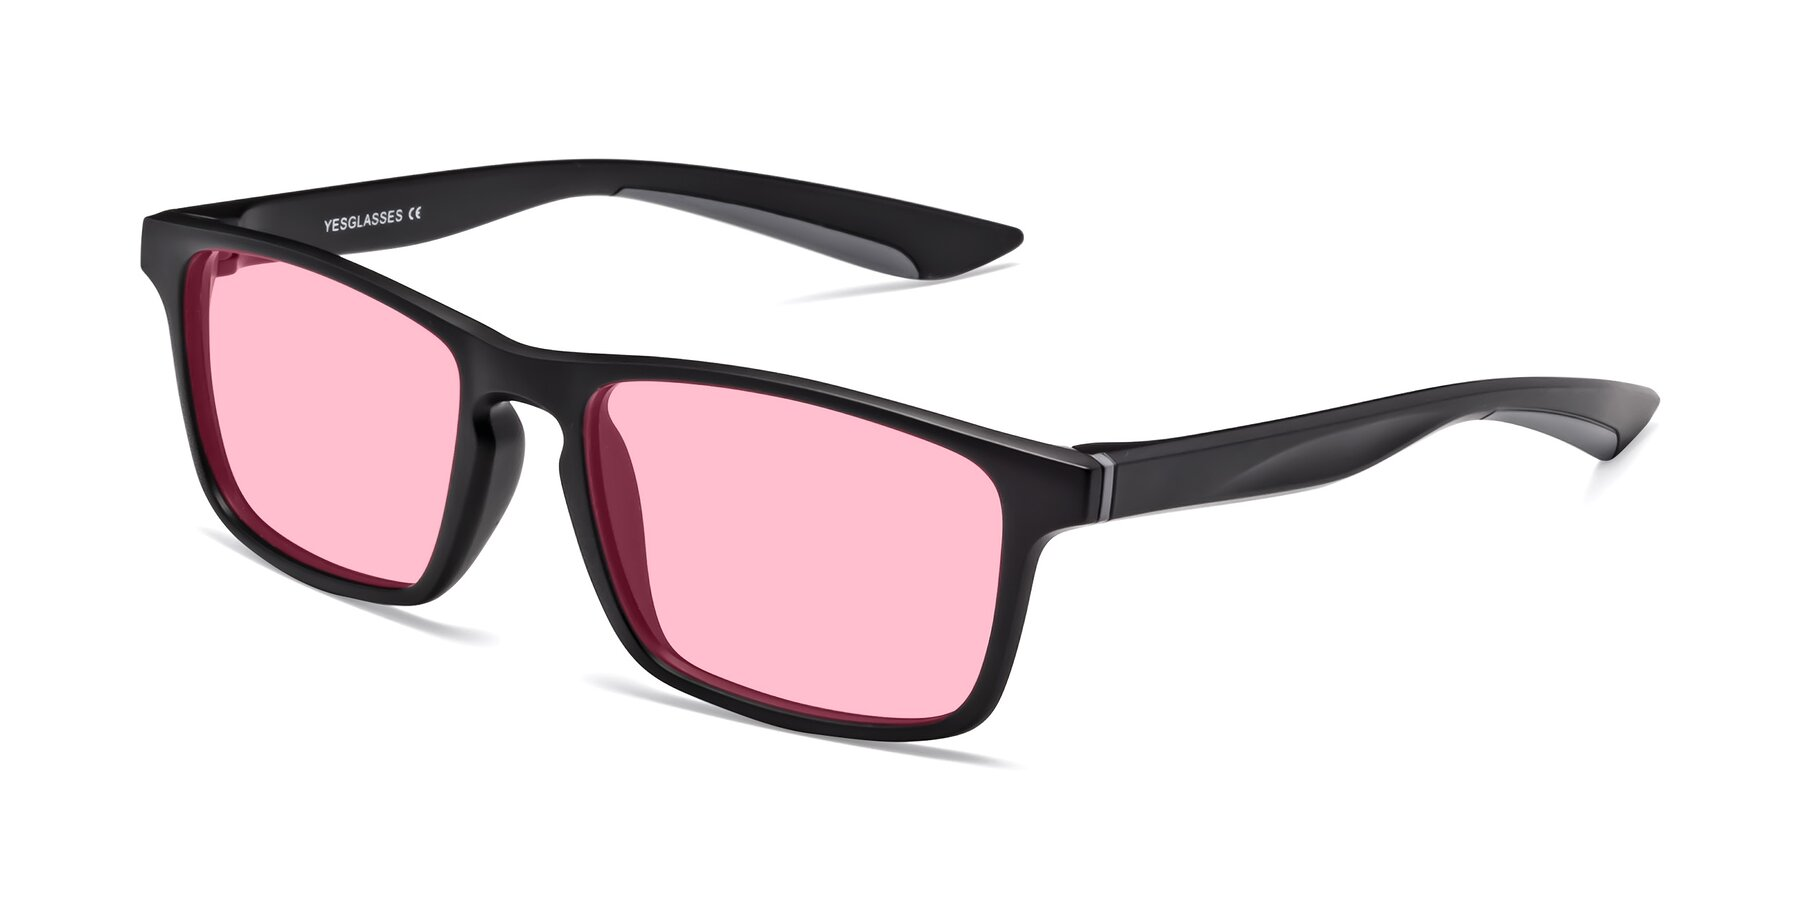 Angle of Passion in Matte Black-Gray with Medium Pink Tinted Lenses